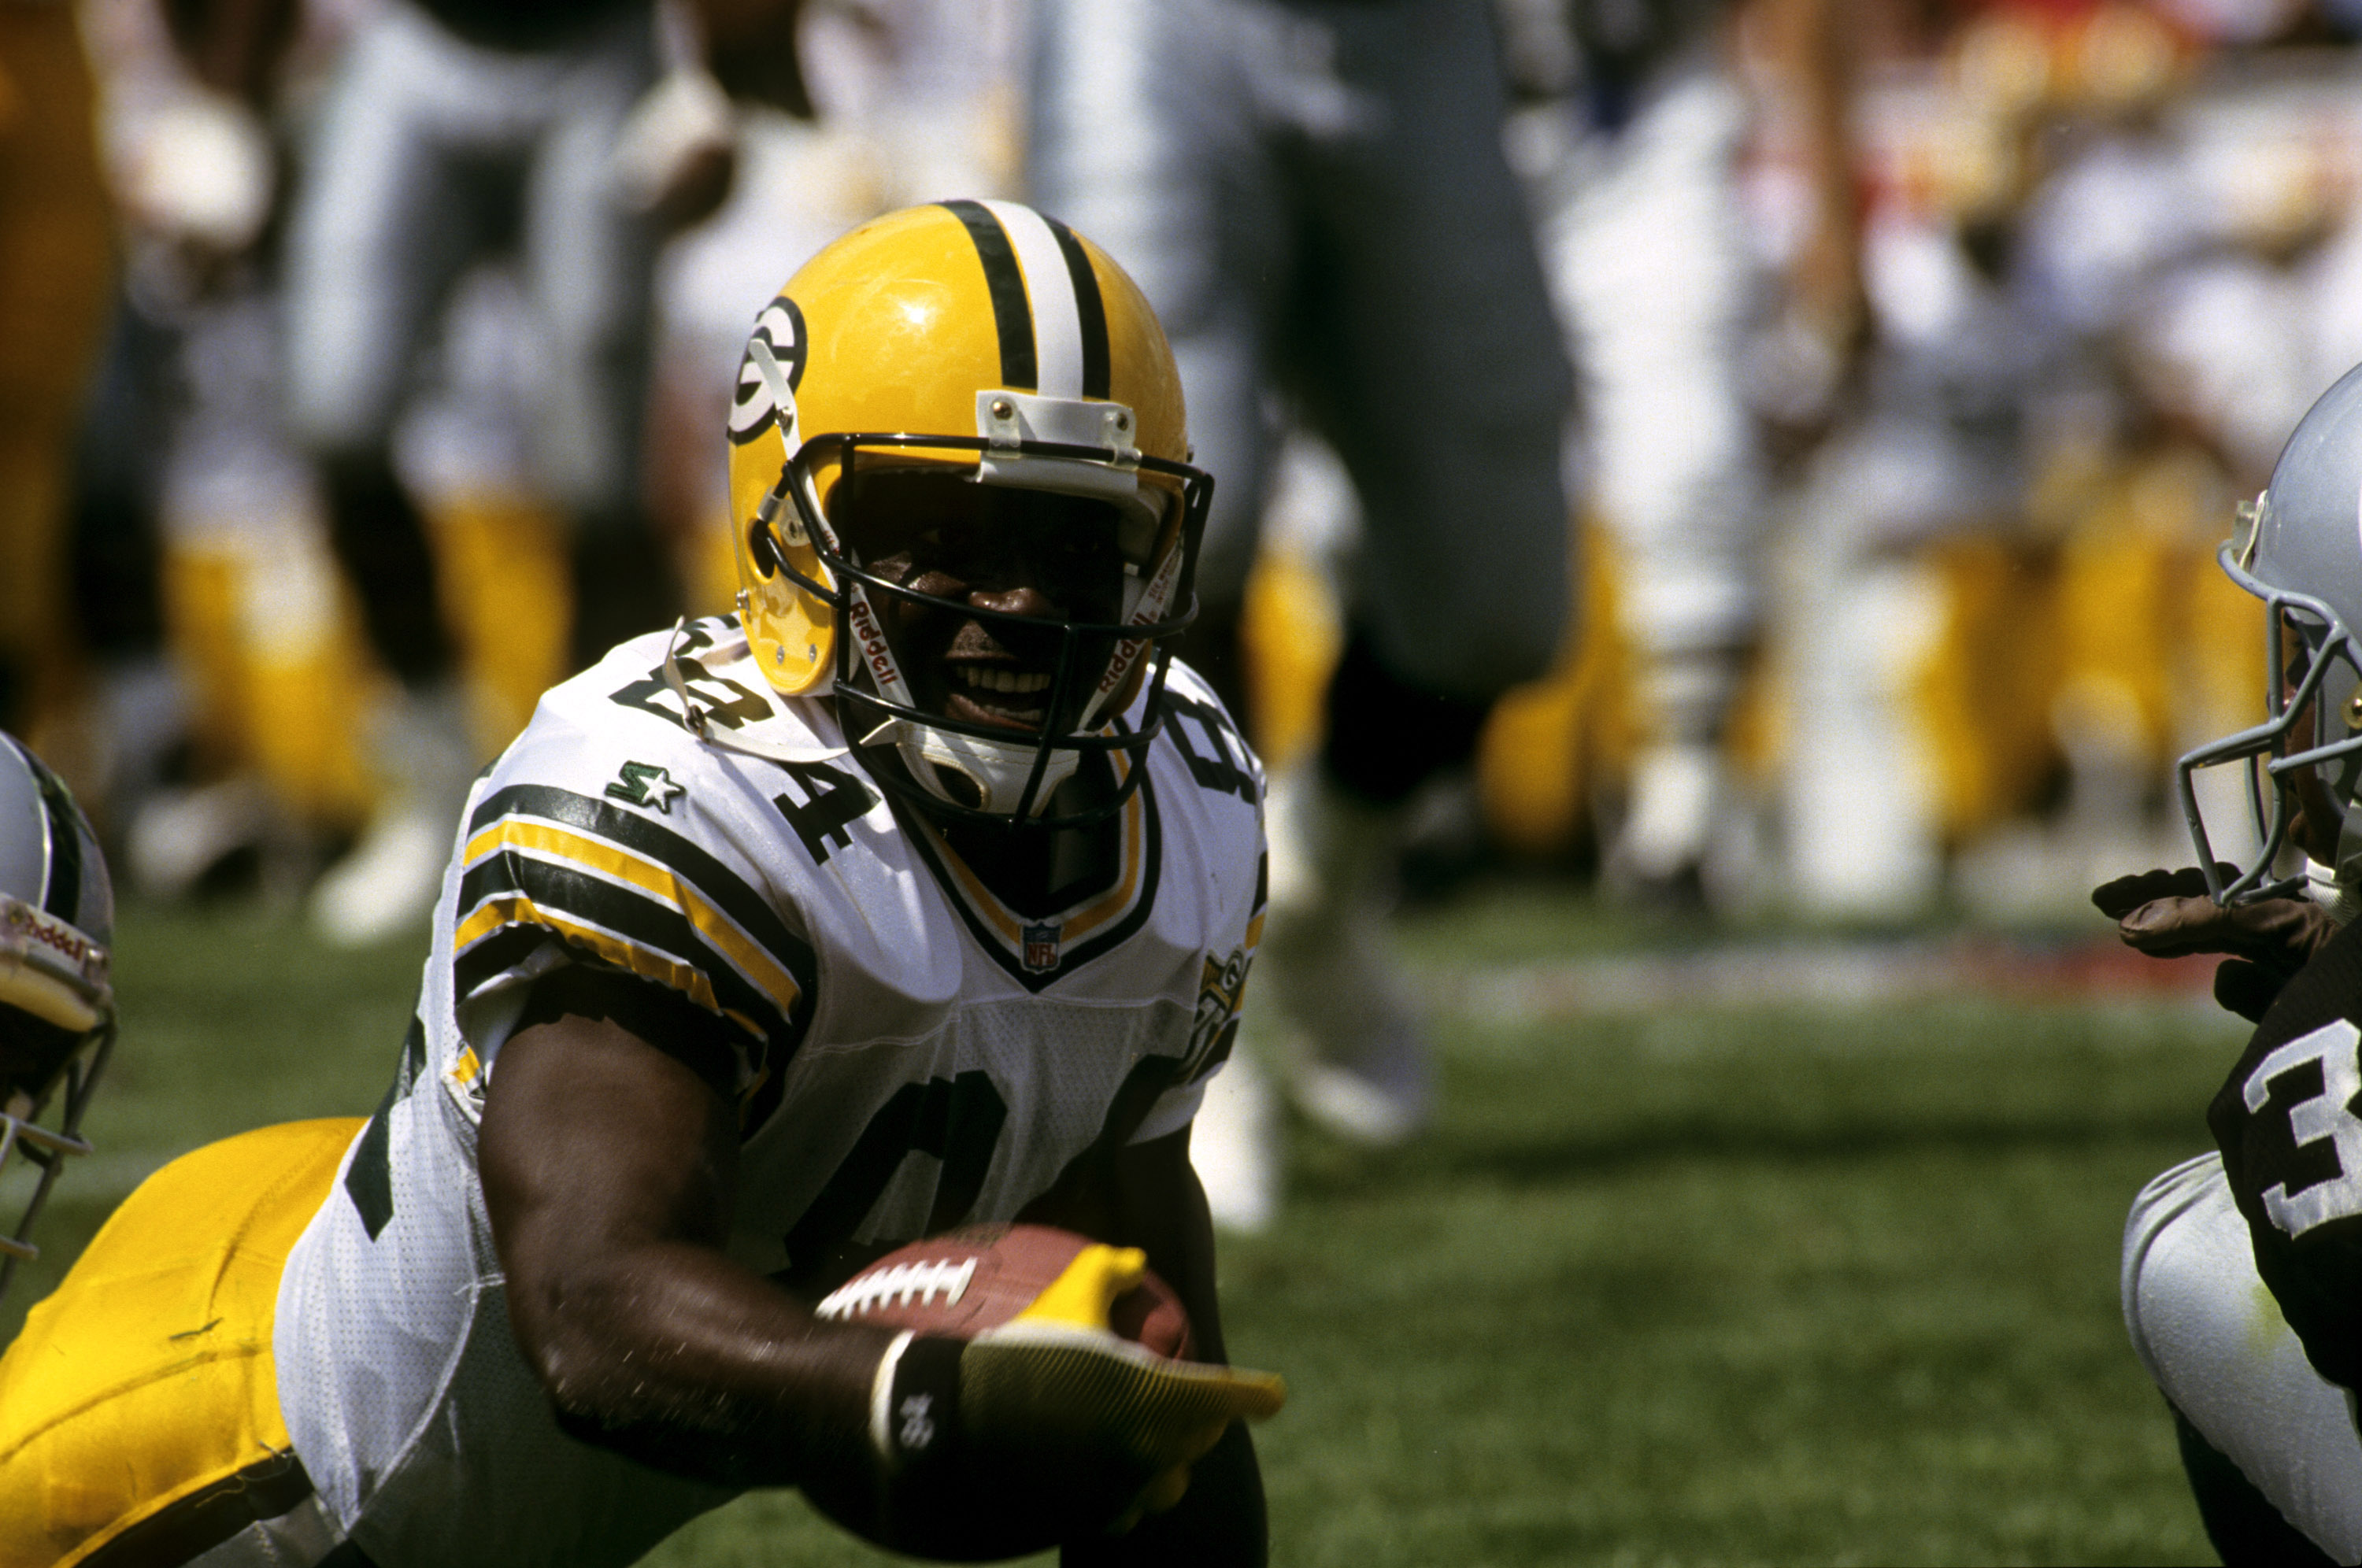 Sterling Sharpe is one of the greatest skill players in Green Bay Packers history. However, Sharpe gave up on following the NFL after he retired.